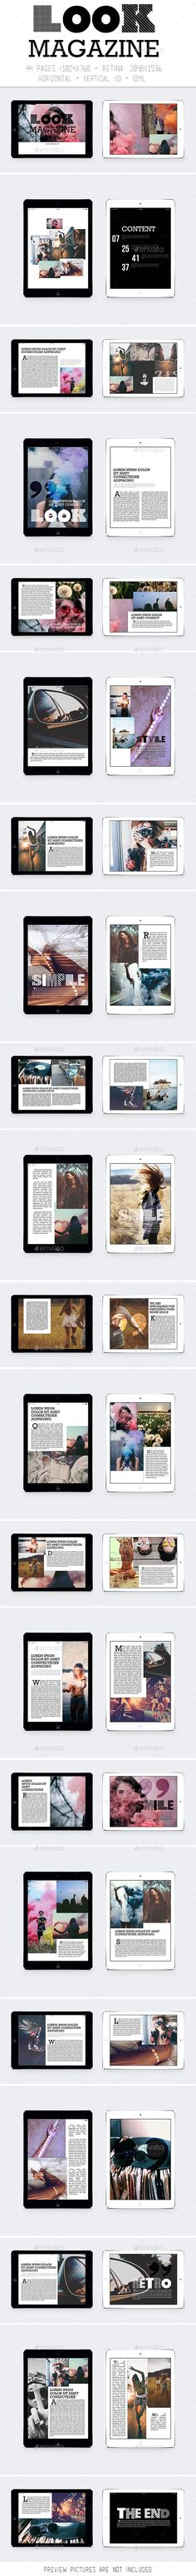 Ipad & Tablet Look Magazine Template InDesign INDD